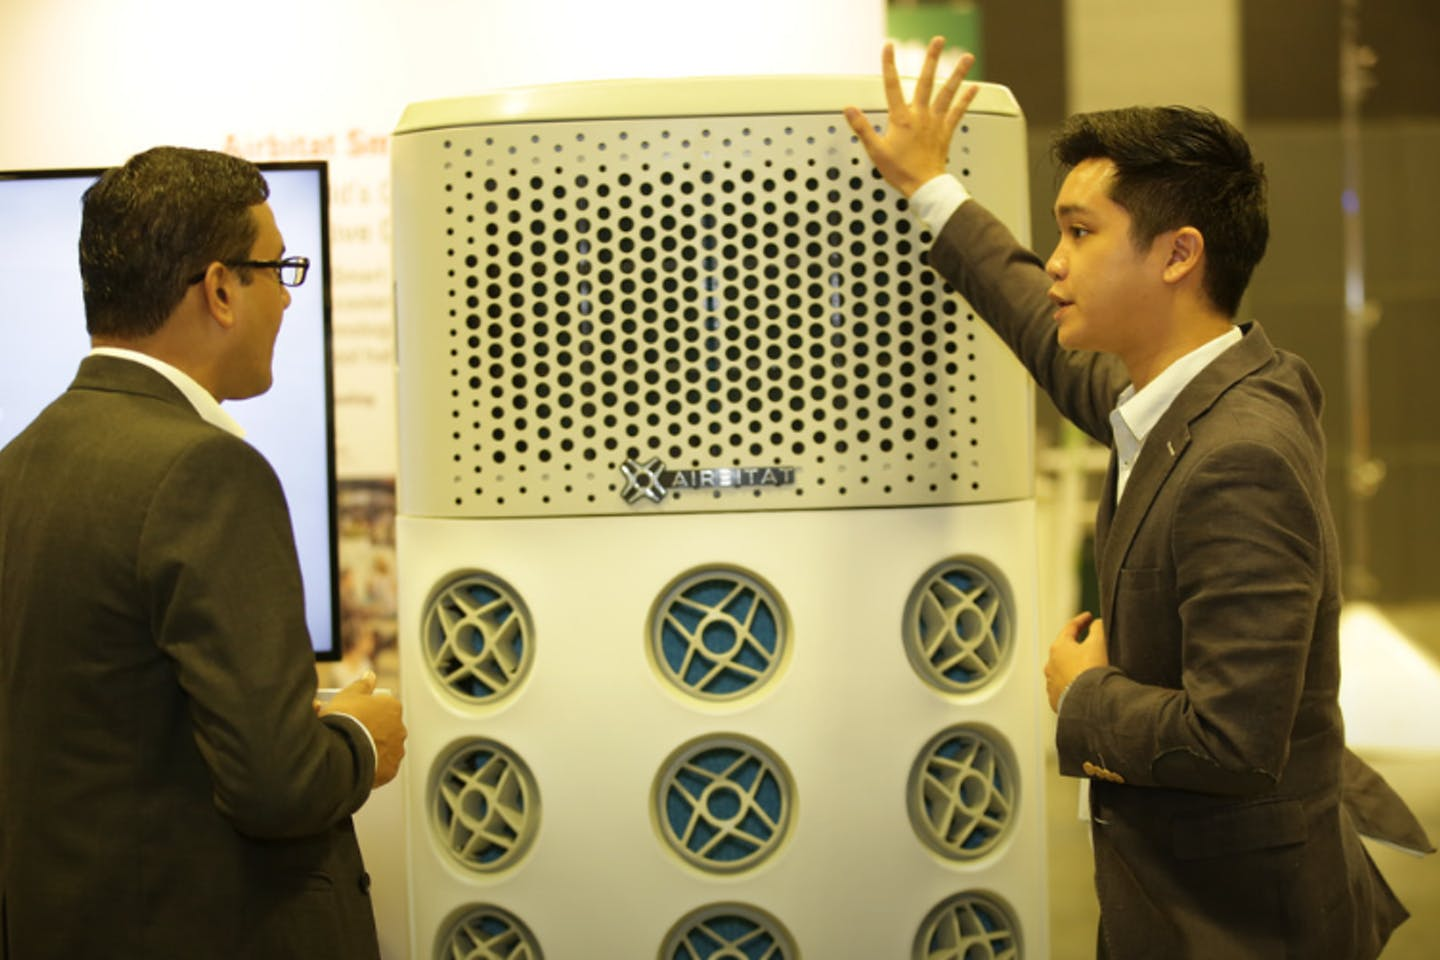 An energy-efficient cooler from Airbitat was one of the exhibits at the Sustainable Solutions Expo. Image: UN Global Compact Network Singapore